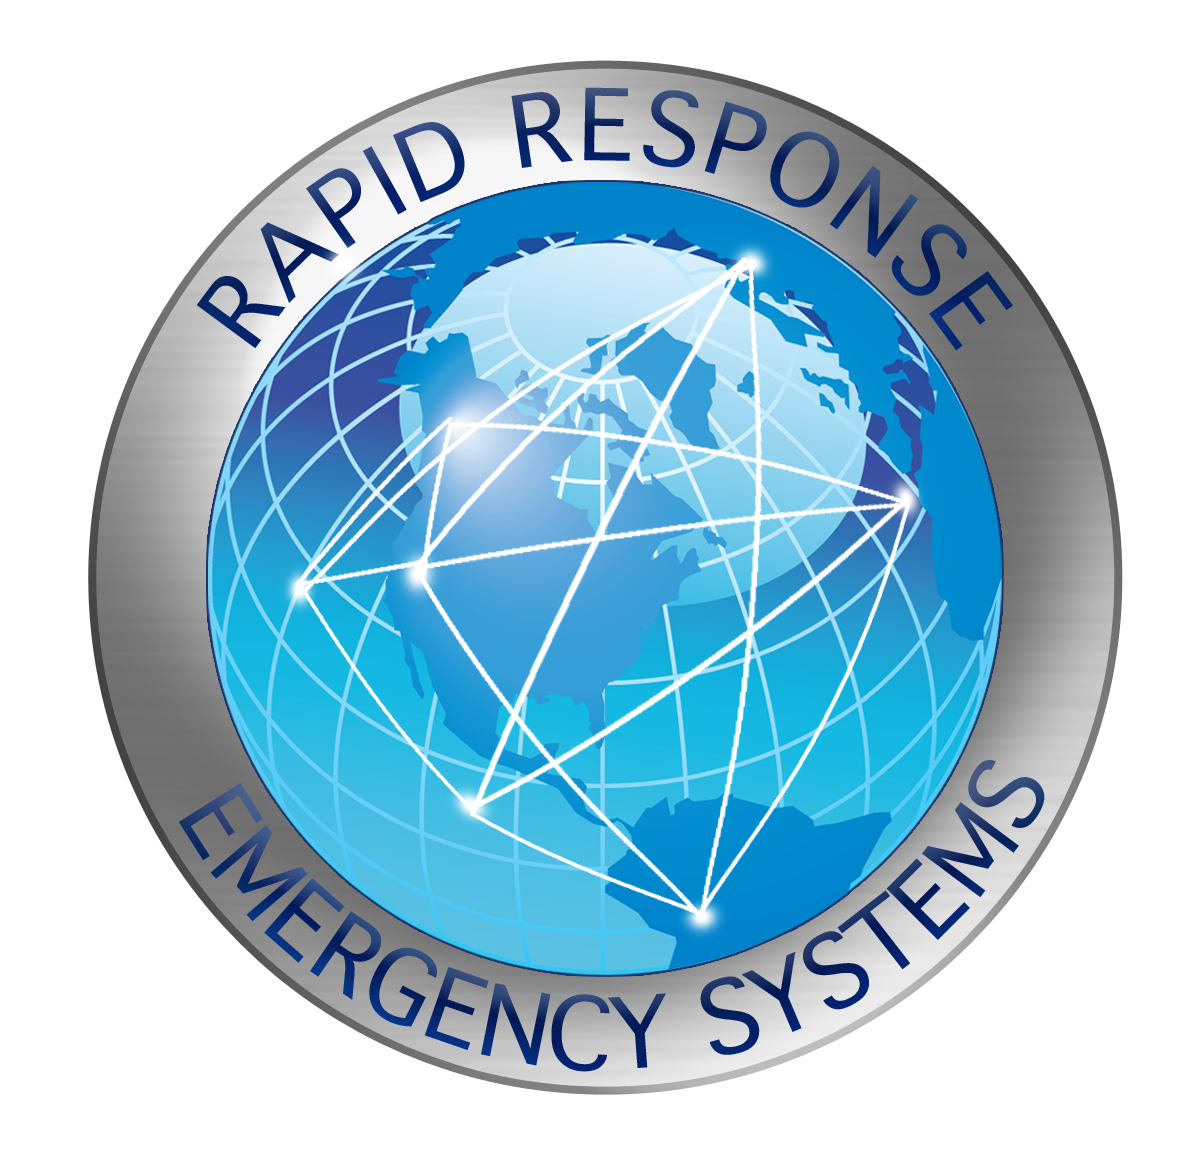 RAPID RESPONSE EMERGENCY SYSTEMS